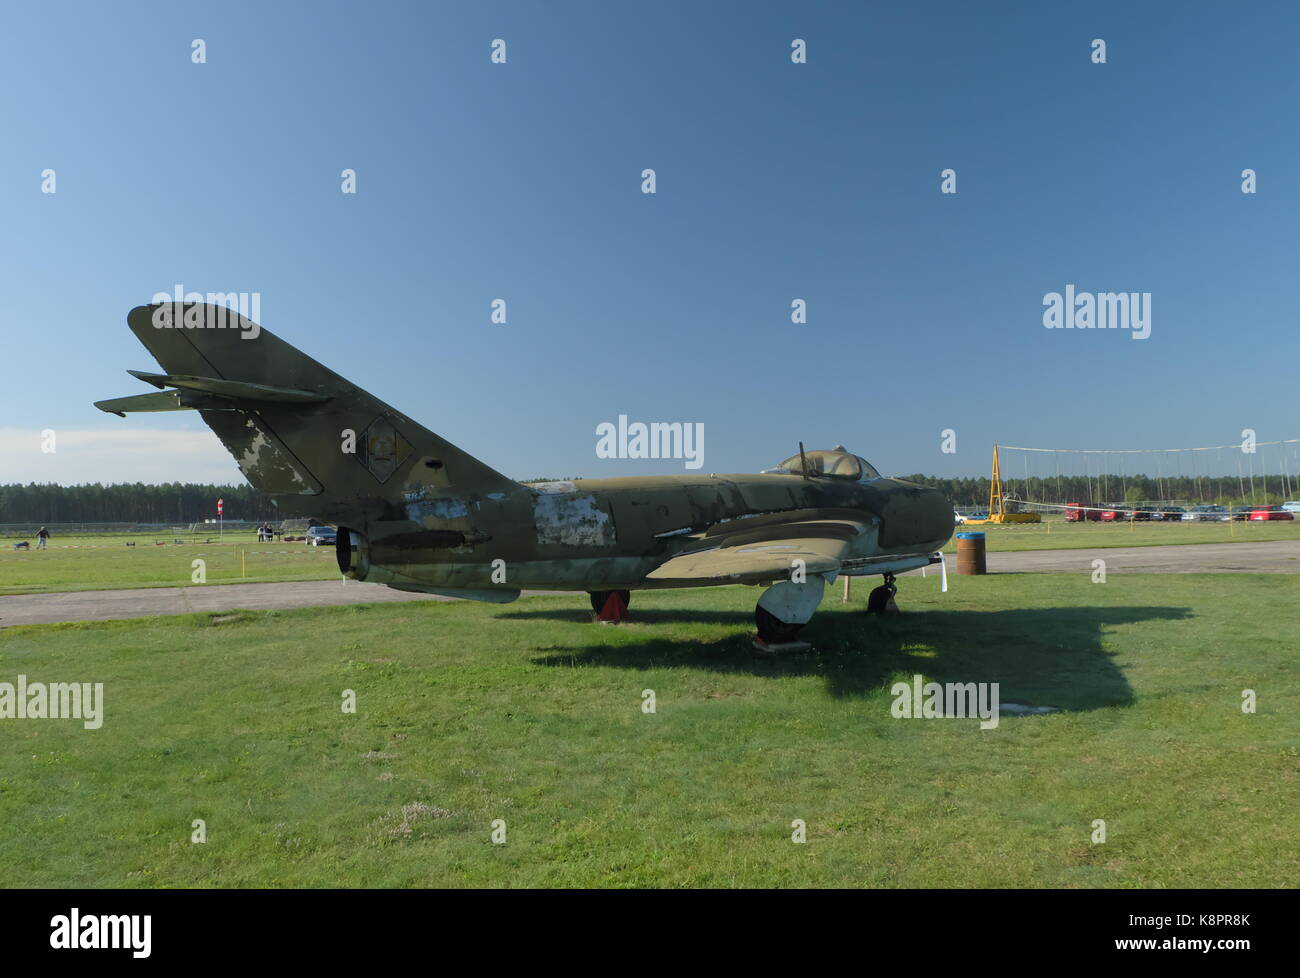 Soviet era -DDR Military Aircraft Stock Photo